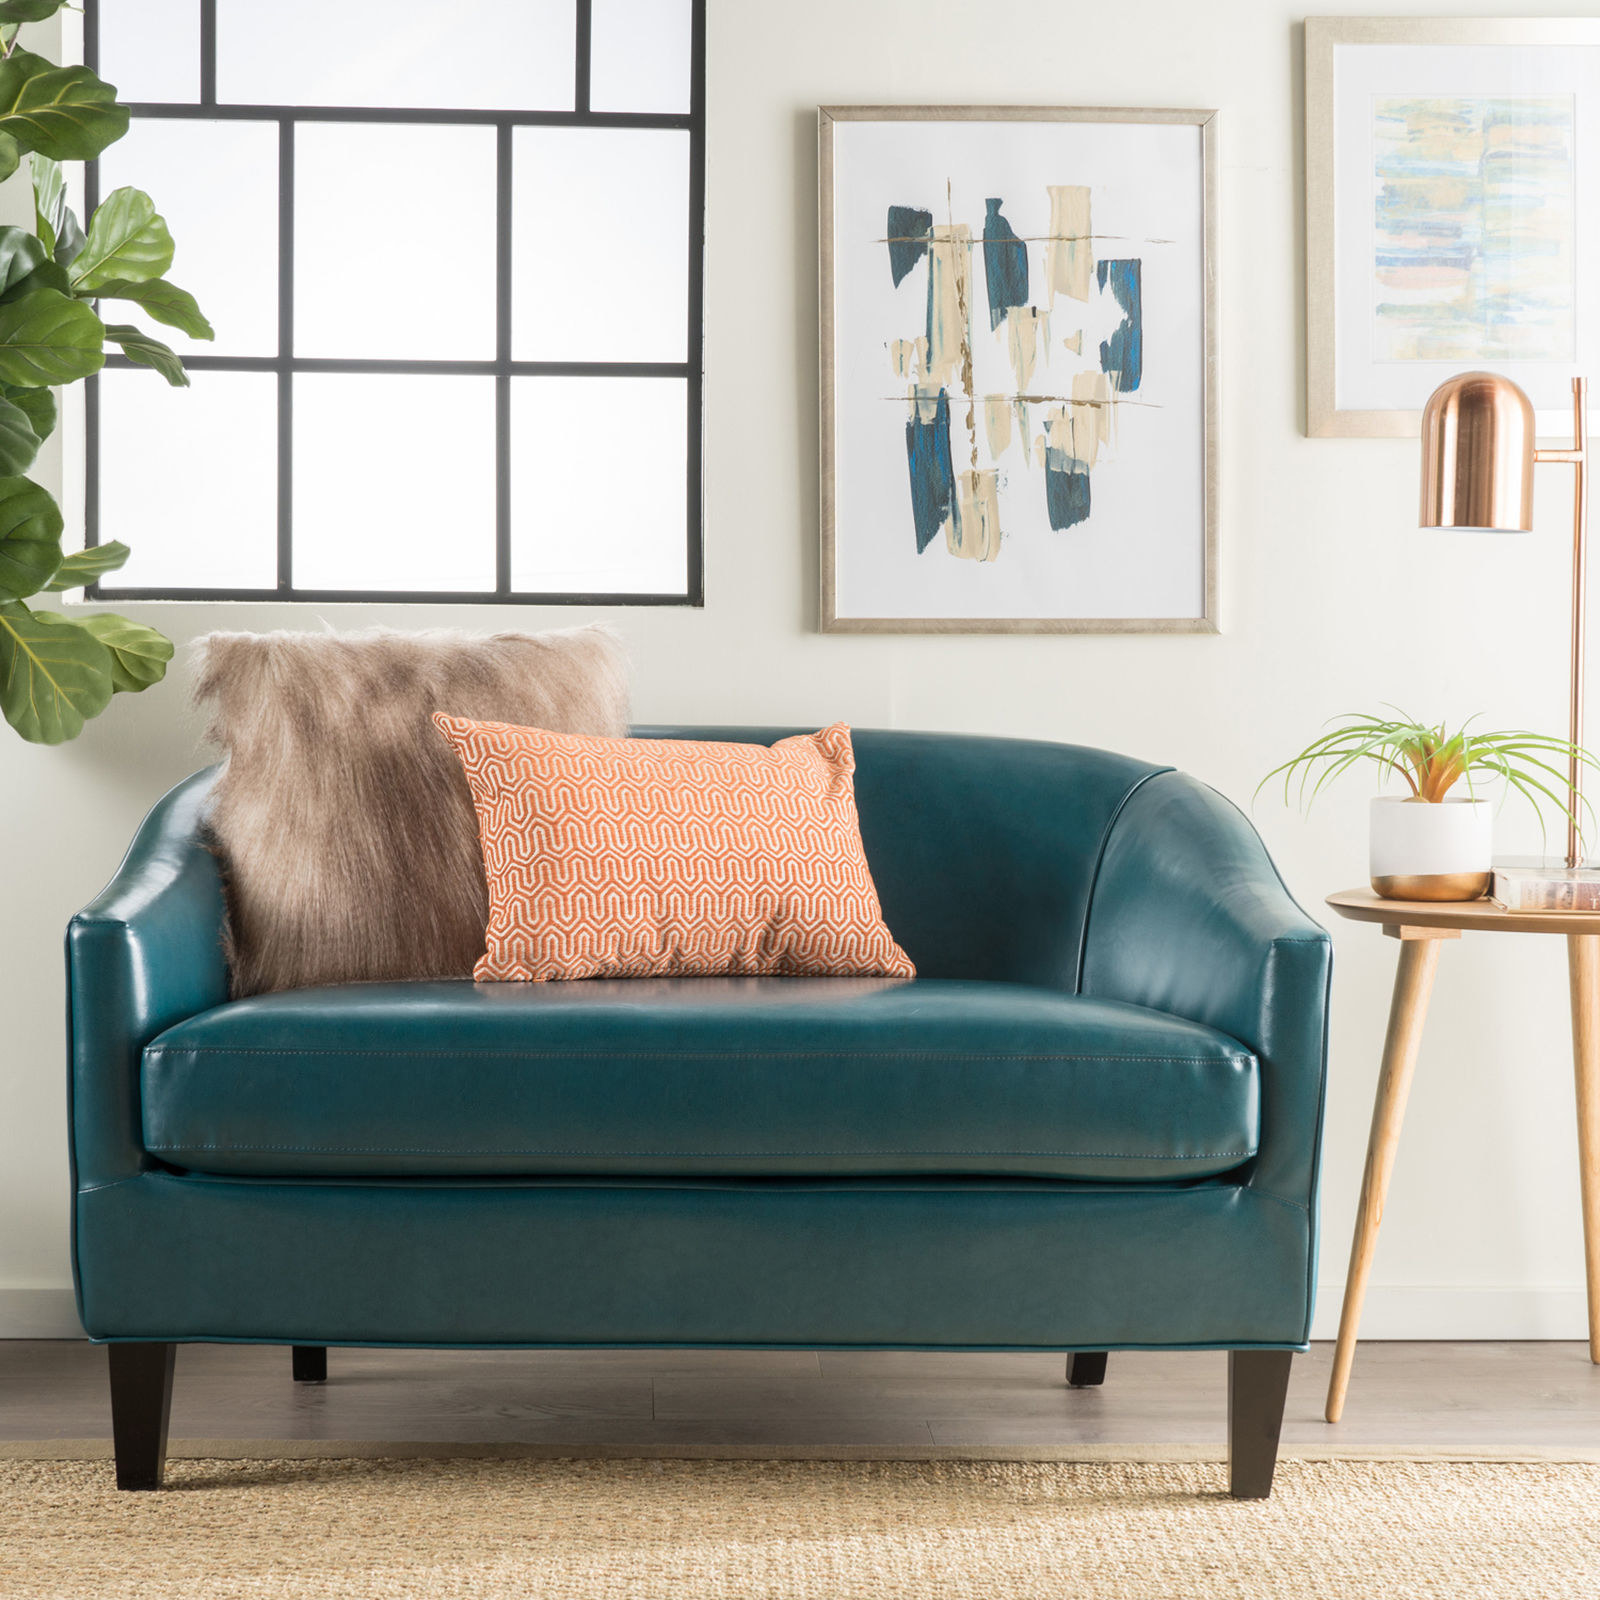 Styles: Loveseats And Settes, Sleeper Sofas, And Sectional Sofas.Prices:  Sectionals